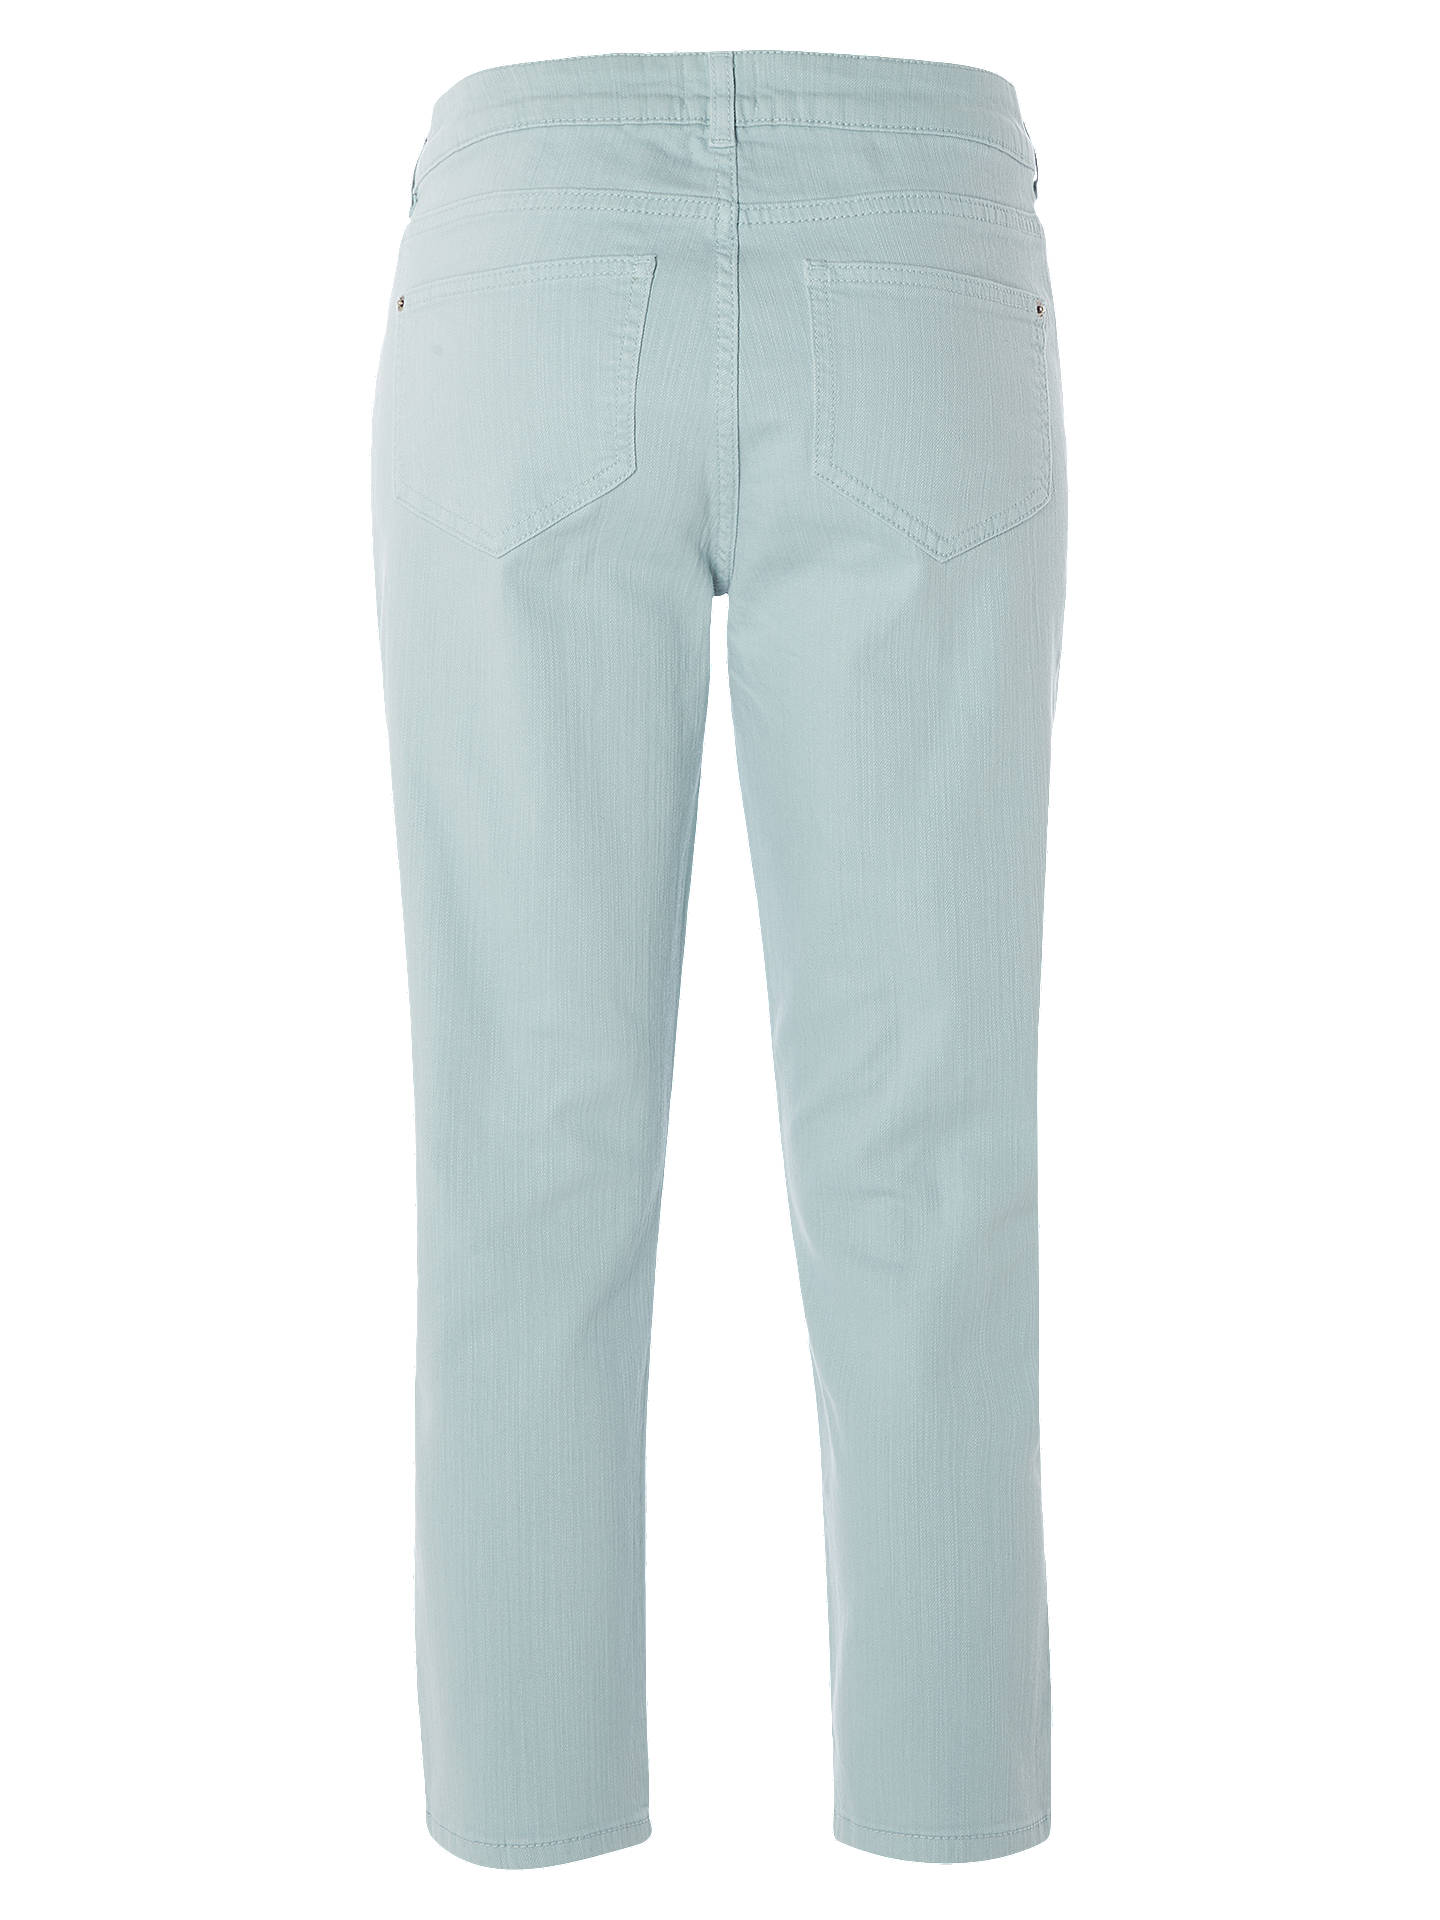 BuyWhite Stuff Sally Straight Crop Jeans, Mint, 6 Online at johnlewis.com